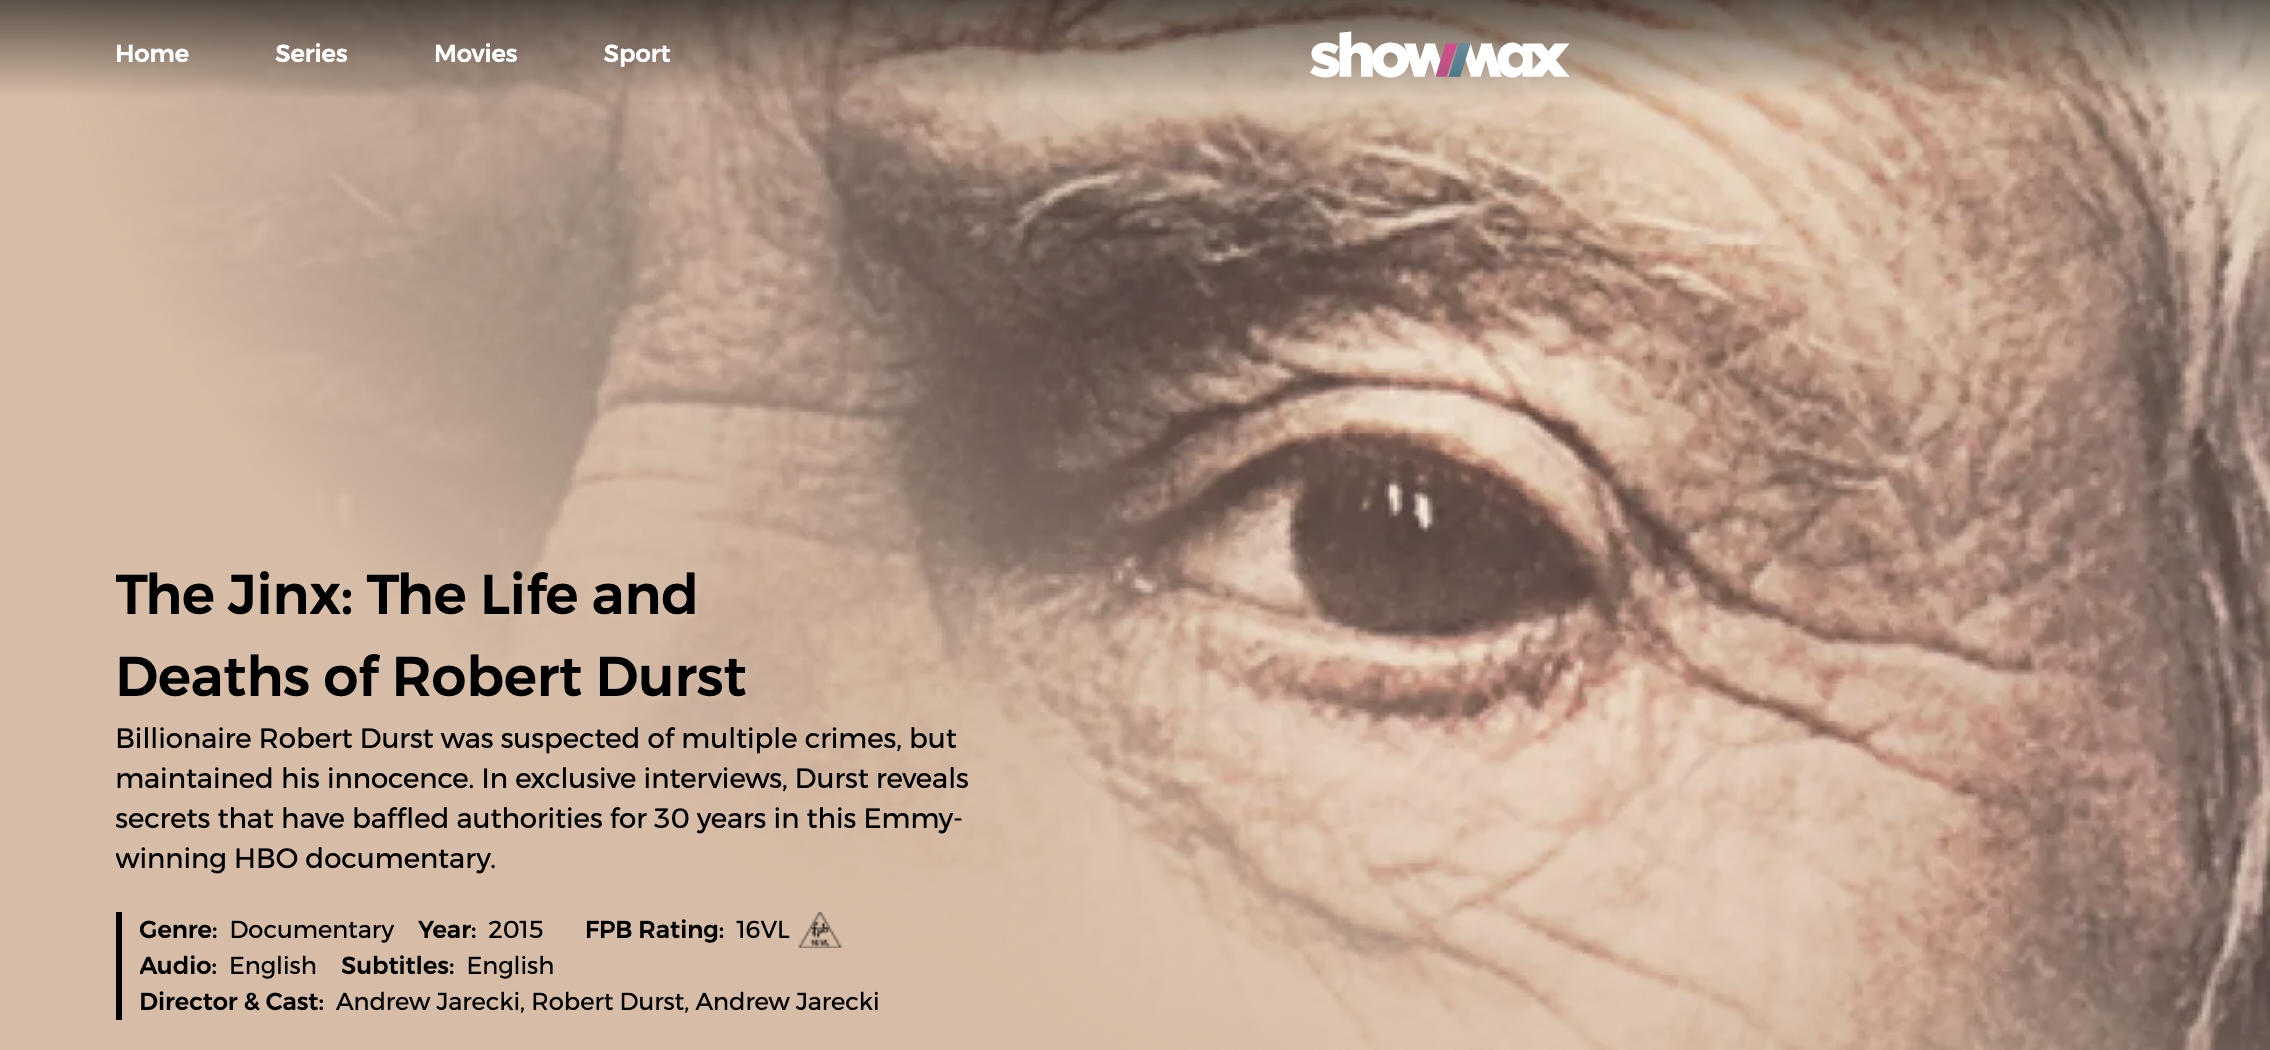 Gripping documentaries on Showmax are making headlines